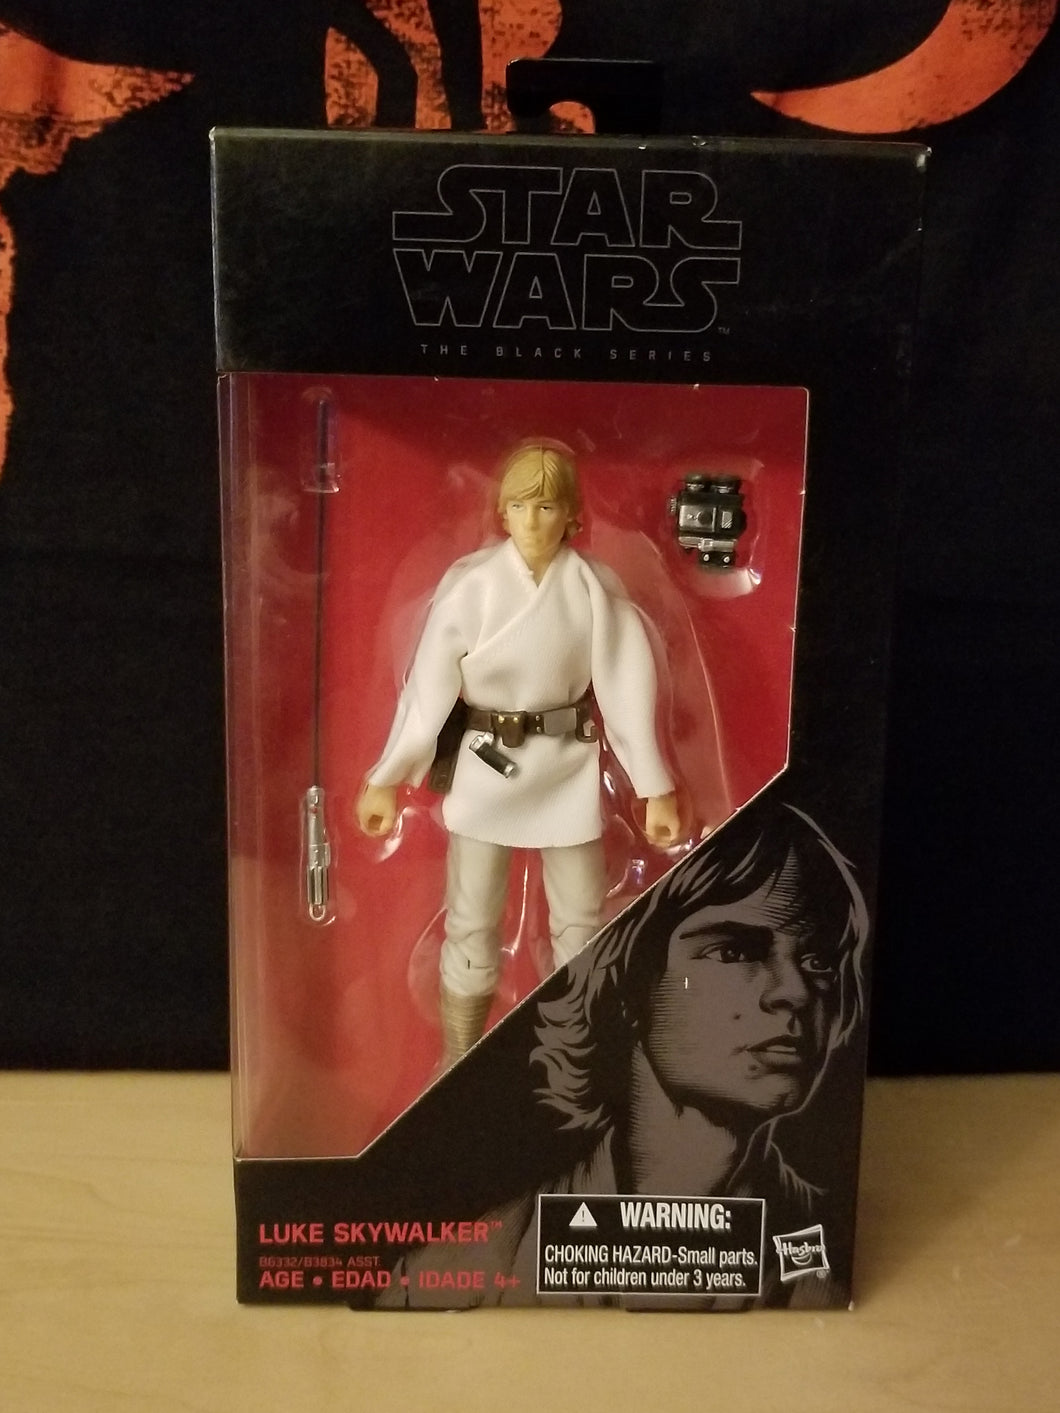 Luke Skywalker #21 - The Black Series (6-inch figure)